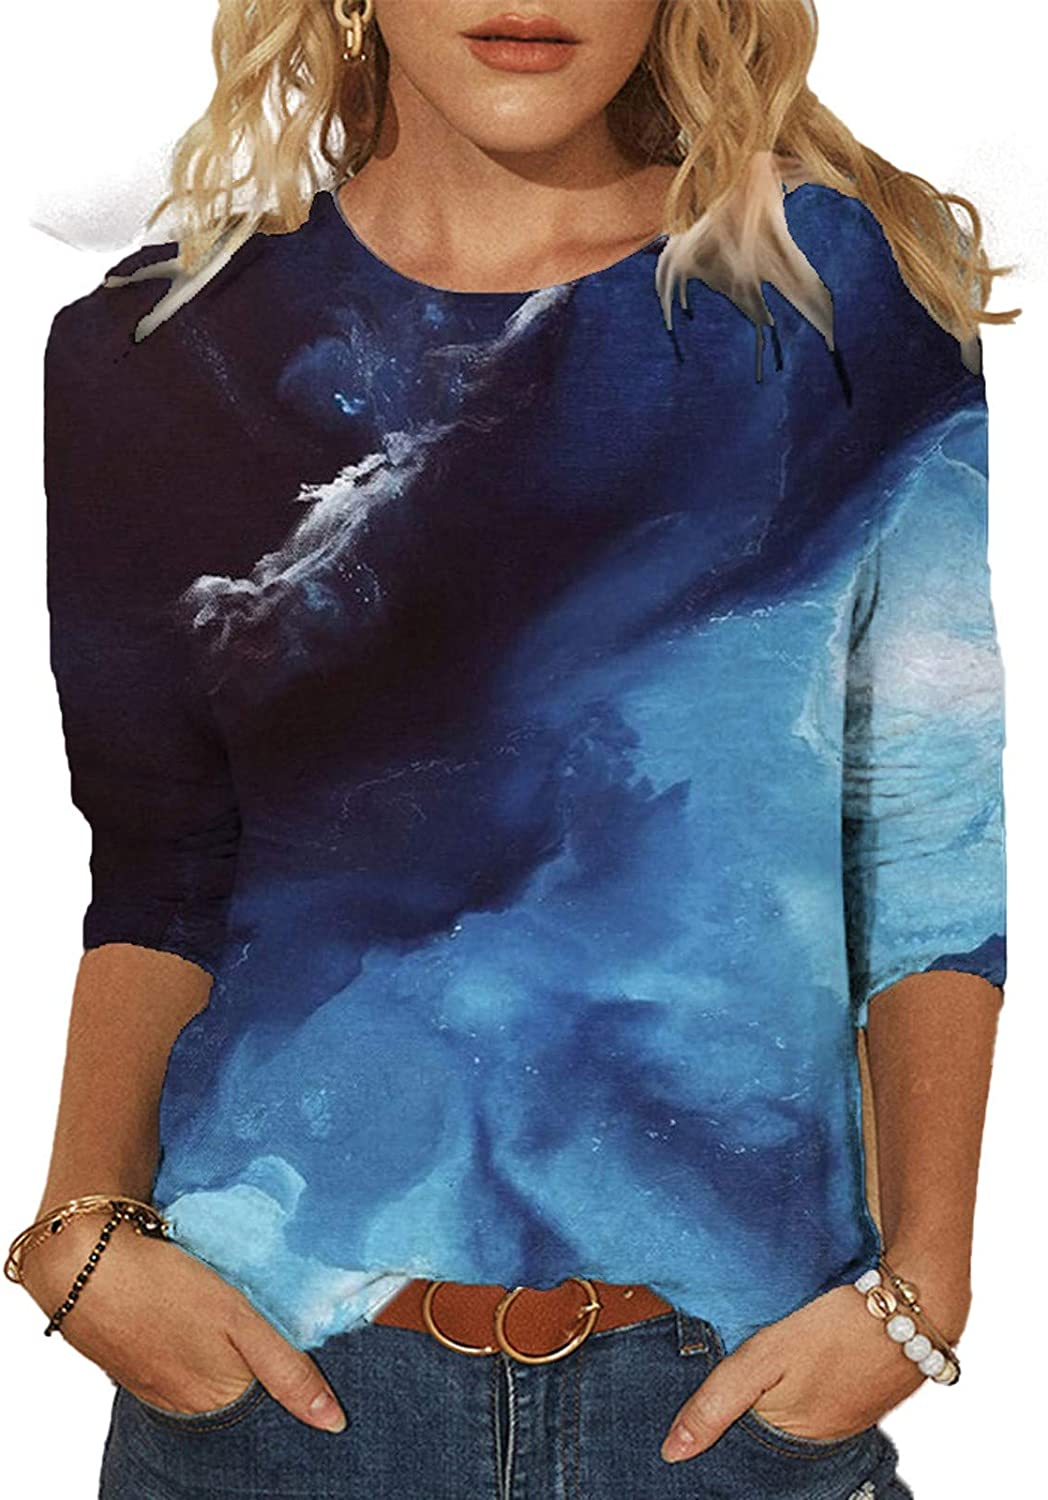 Masbird Shirt for Women Casual Summer Fashion Tops Round Neck Loose Soft Blouse Dressy Colorful Summer Tops